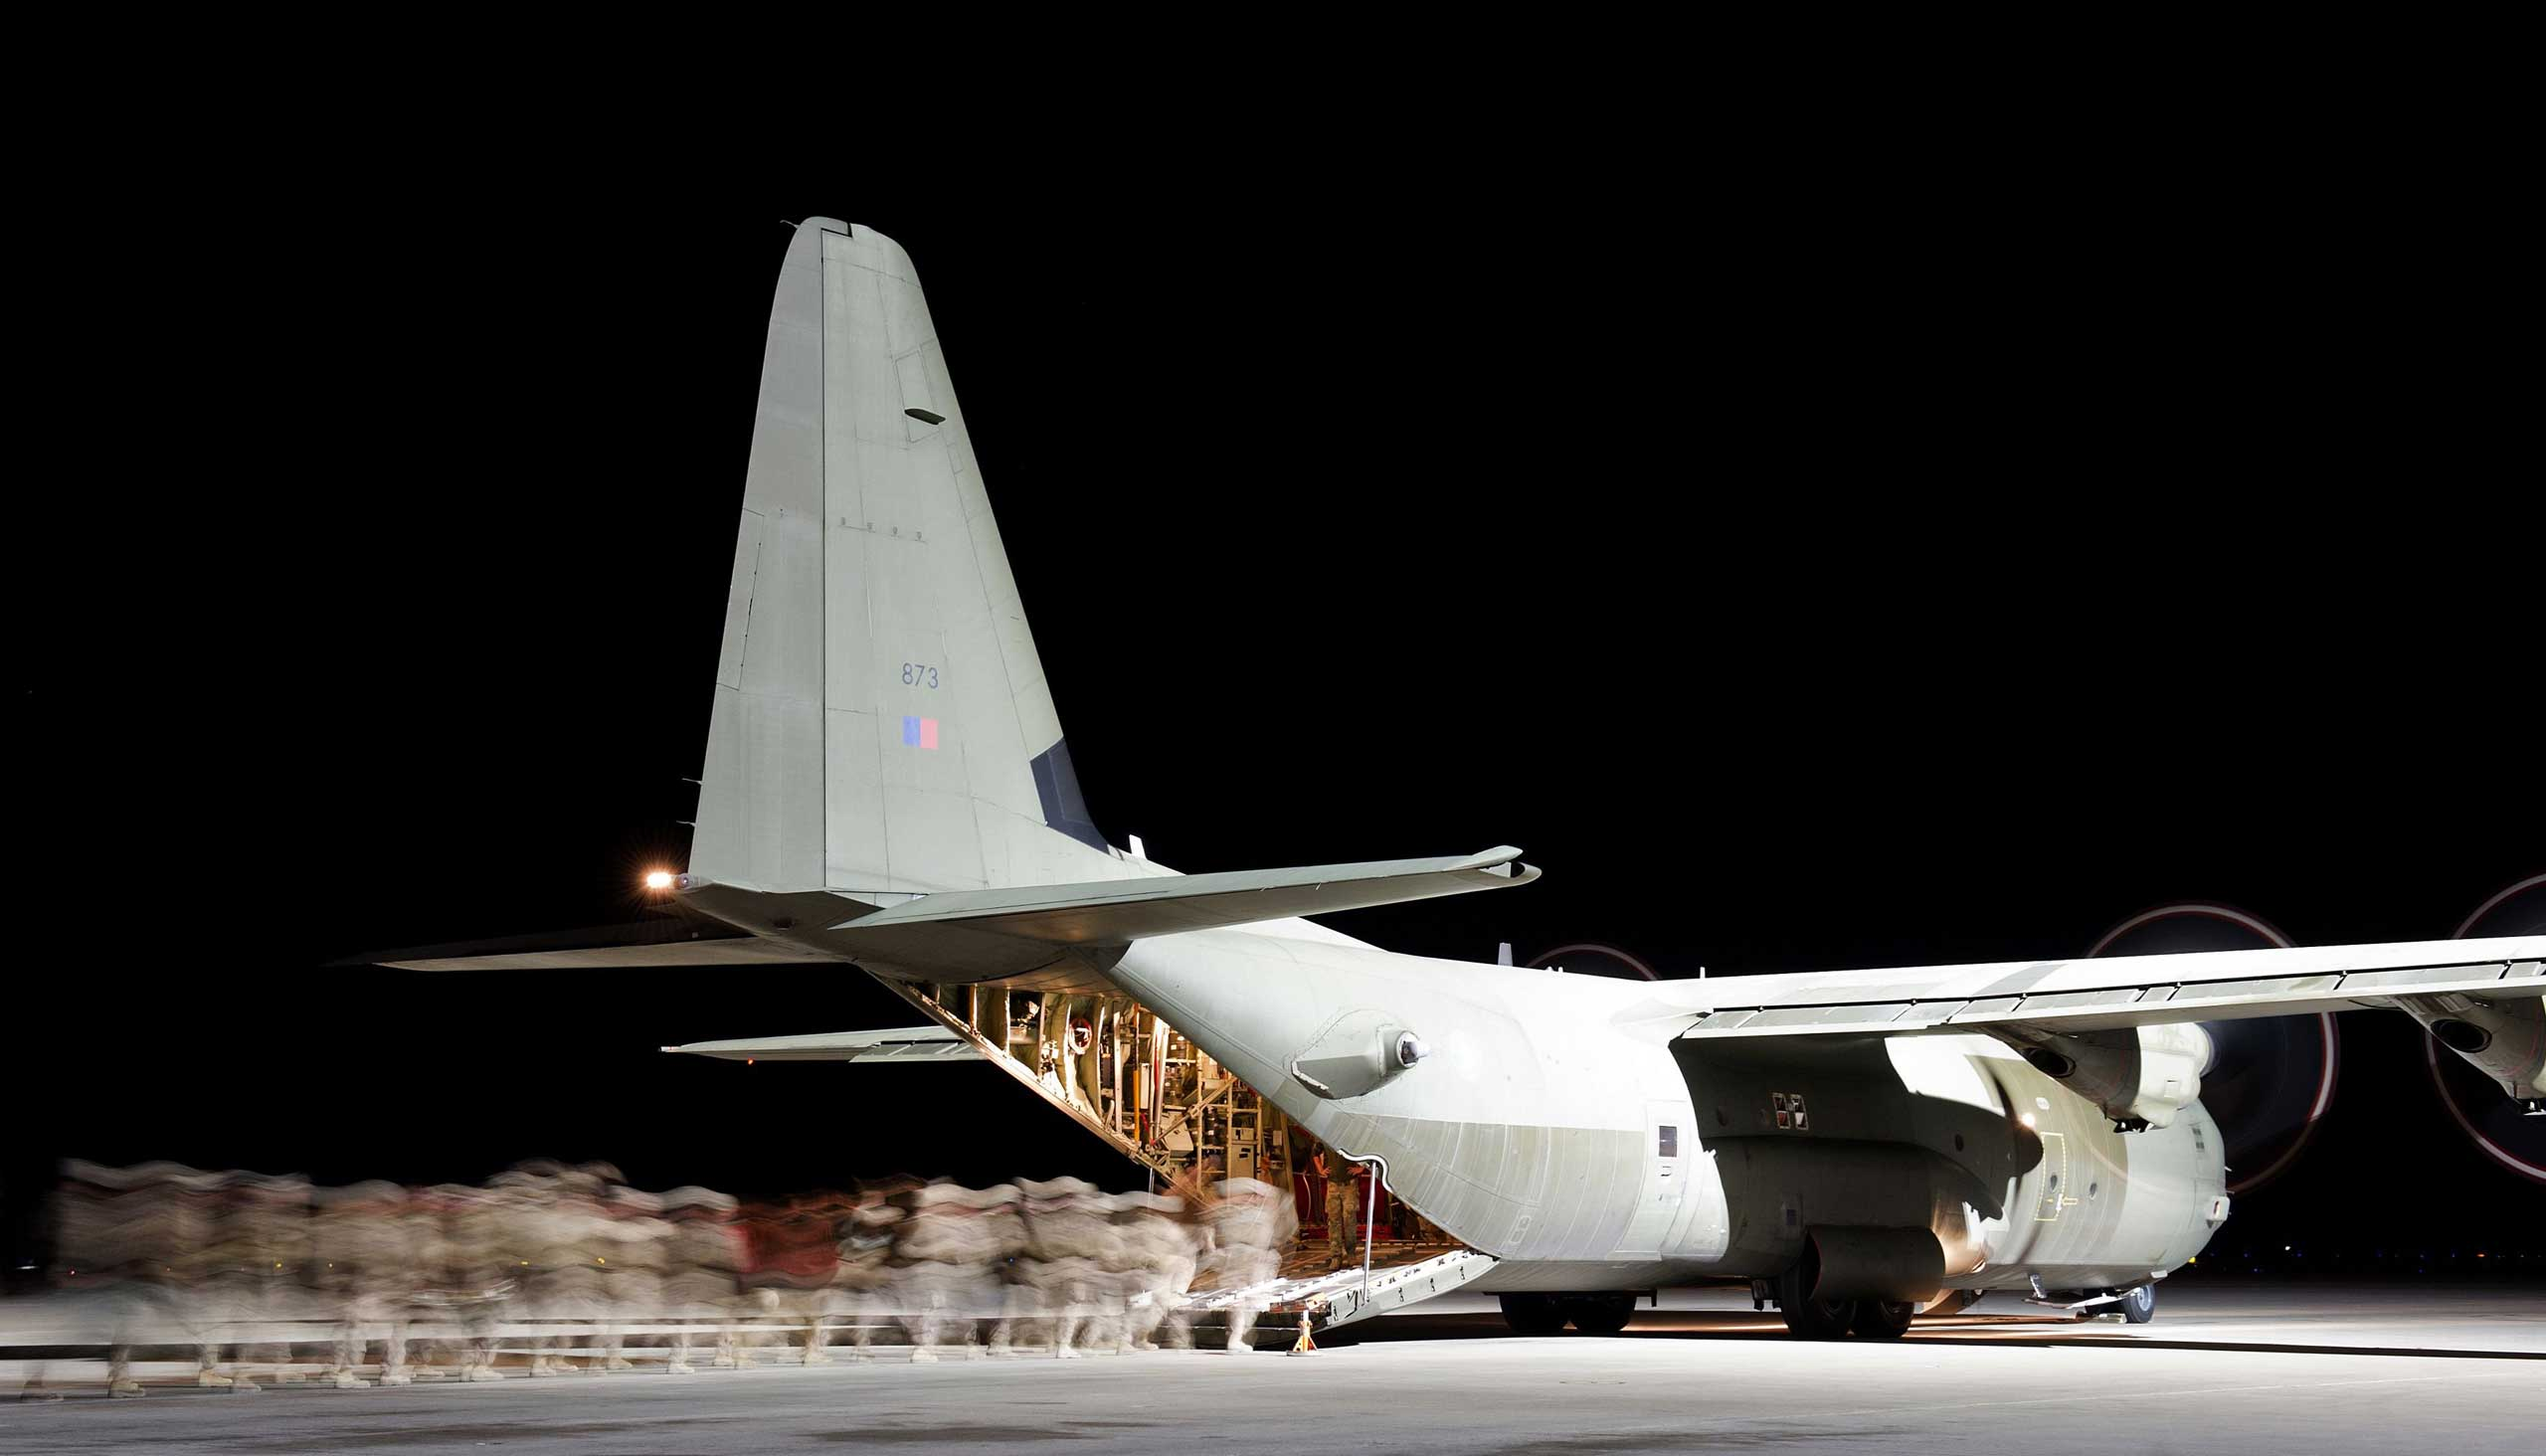 Oct. 27, 2014. British troops are pictured leaving Camp Bastion in Helmand Province, Afghanistan for the final time in the back of a RAF Hercules transporter aircraft.